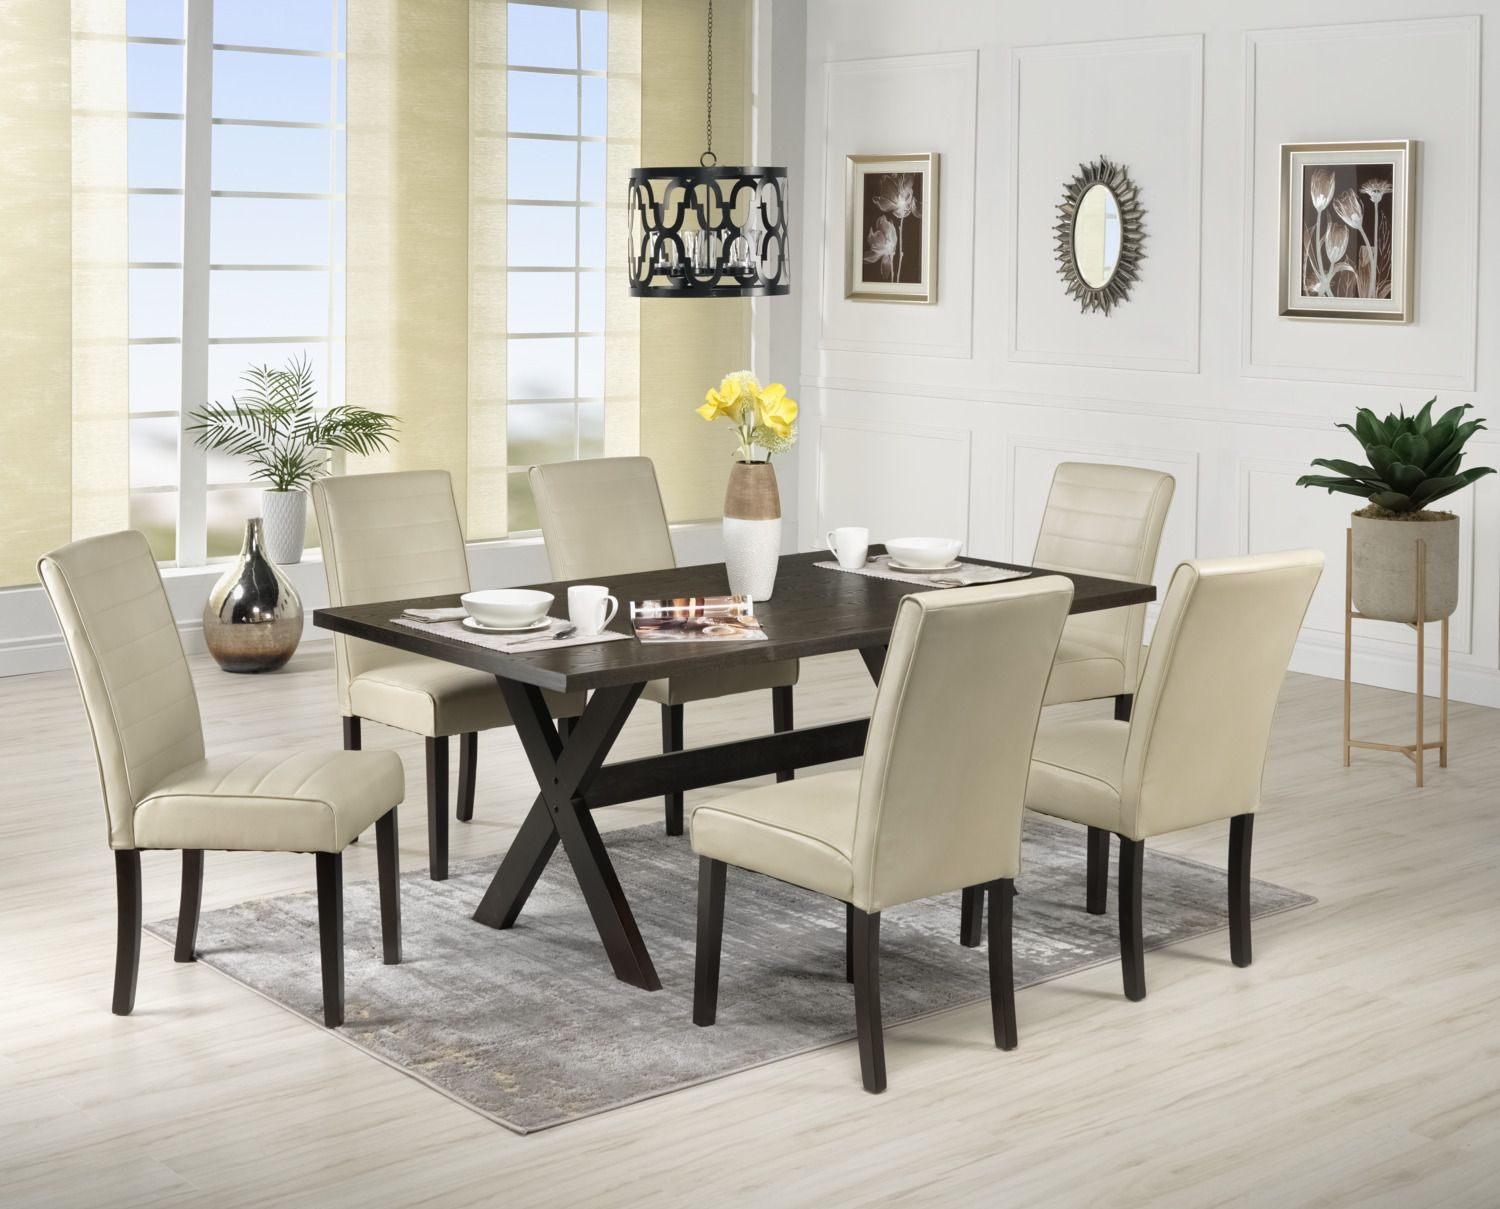 Casual Dining Room Furniture  Marlo Table  Walnut  Home Deco Extraordinary Casual Dining Room Sets Design Inspiration